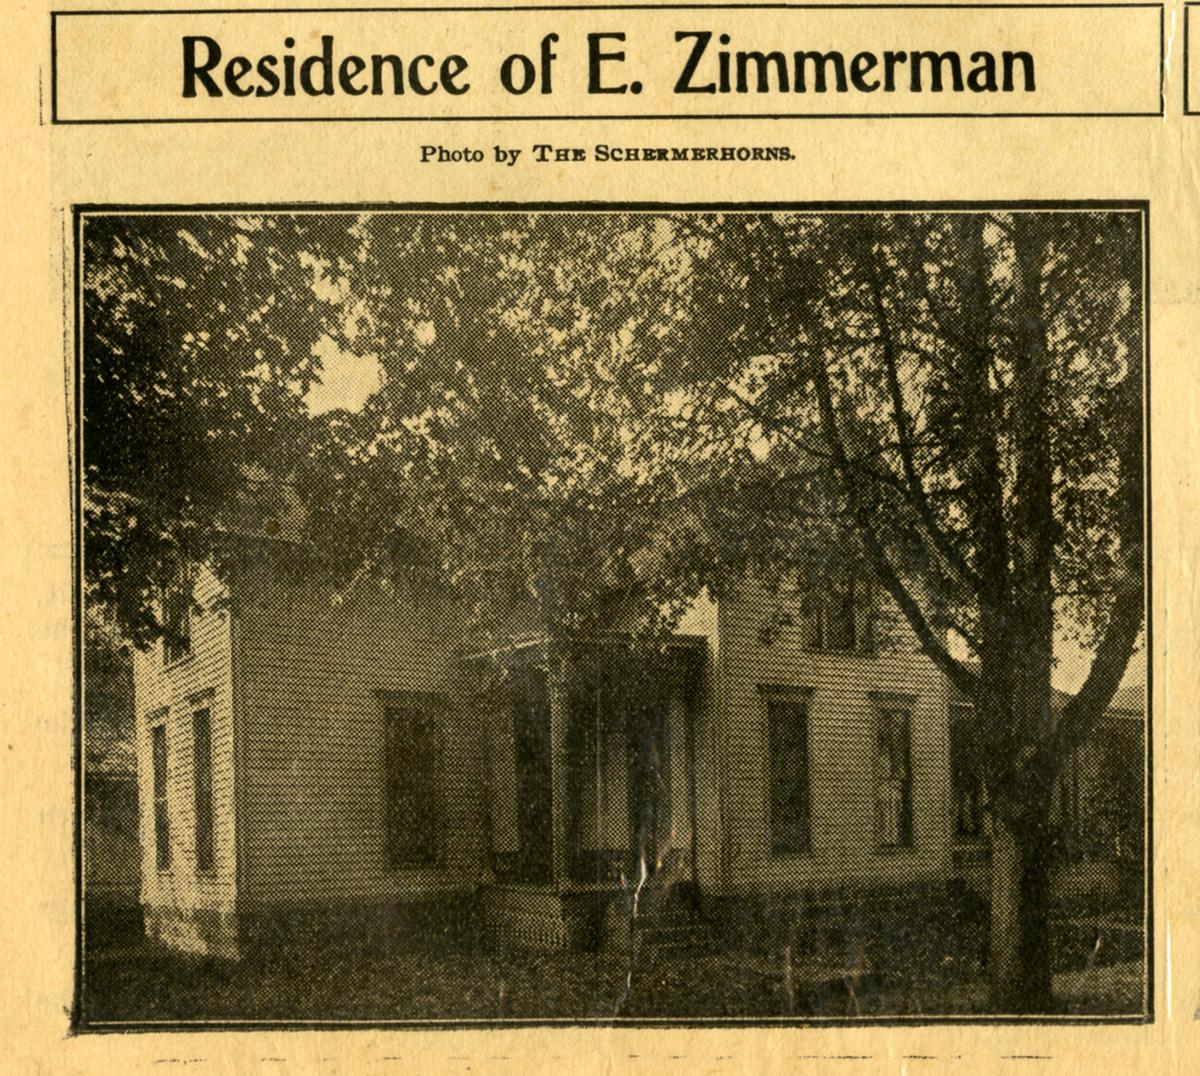 Residence of E. Zimmerman